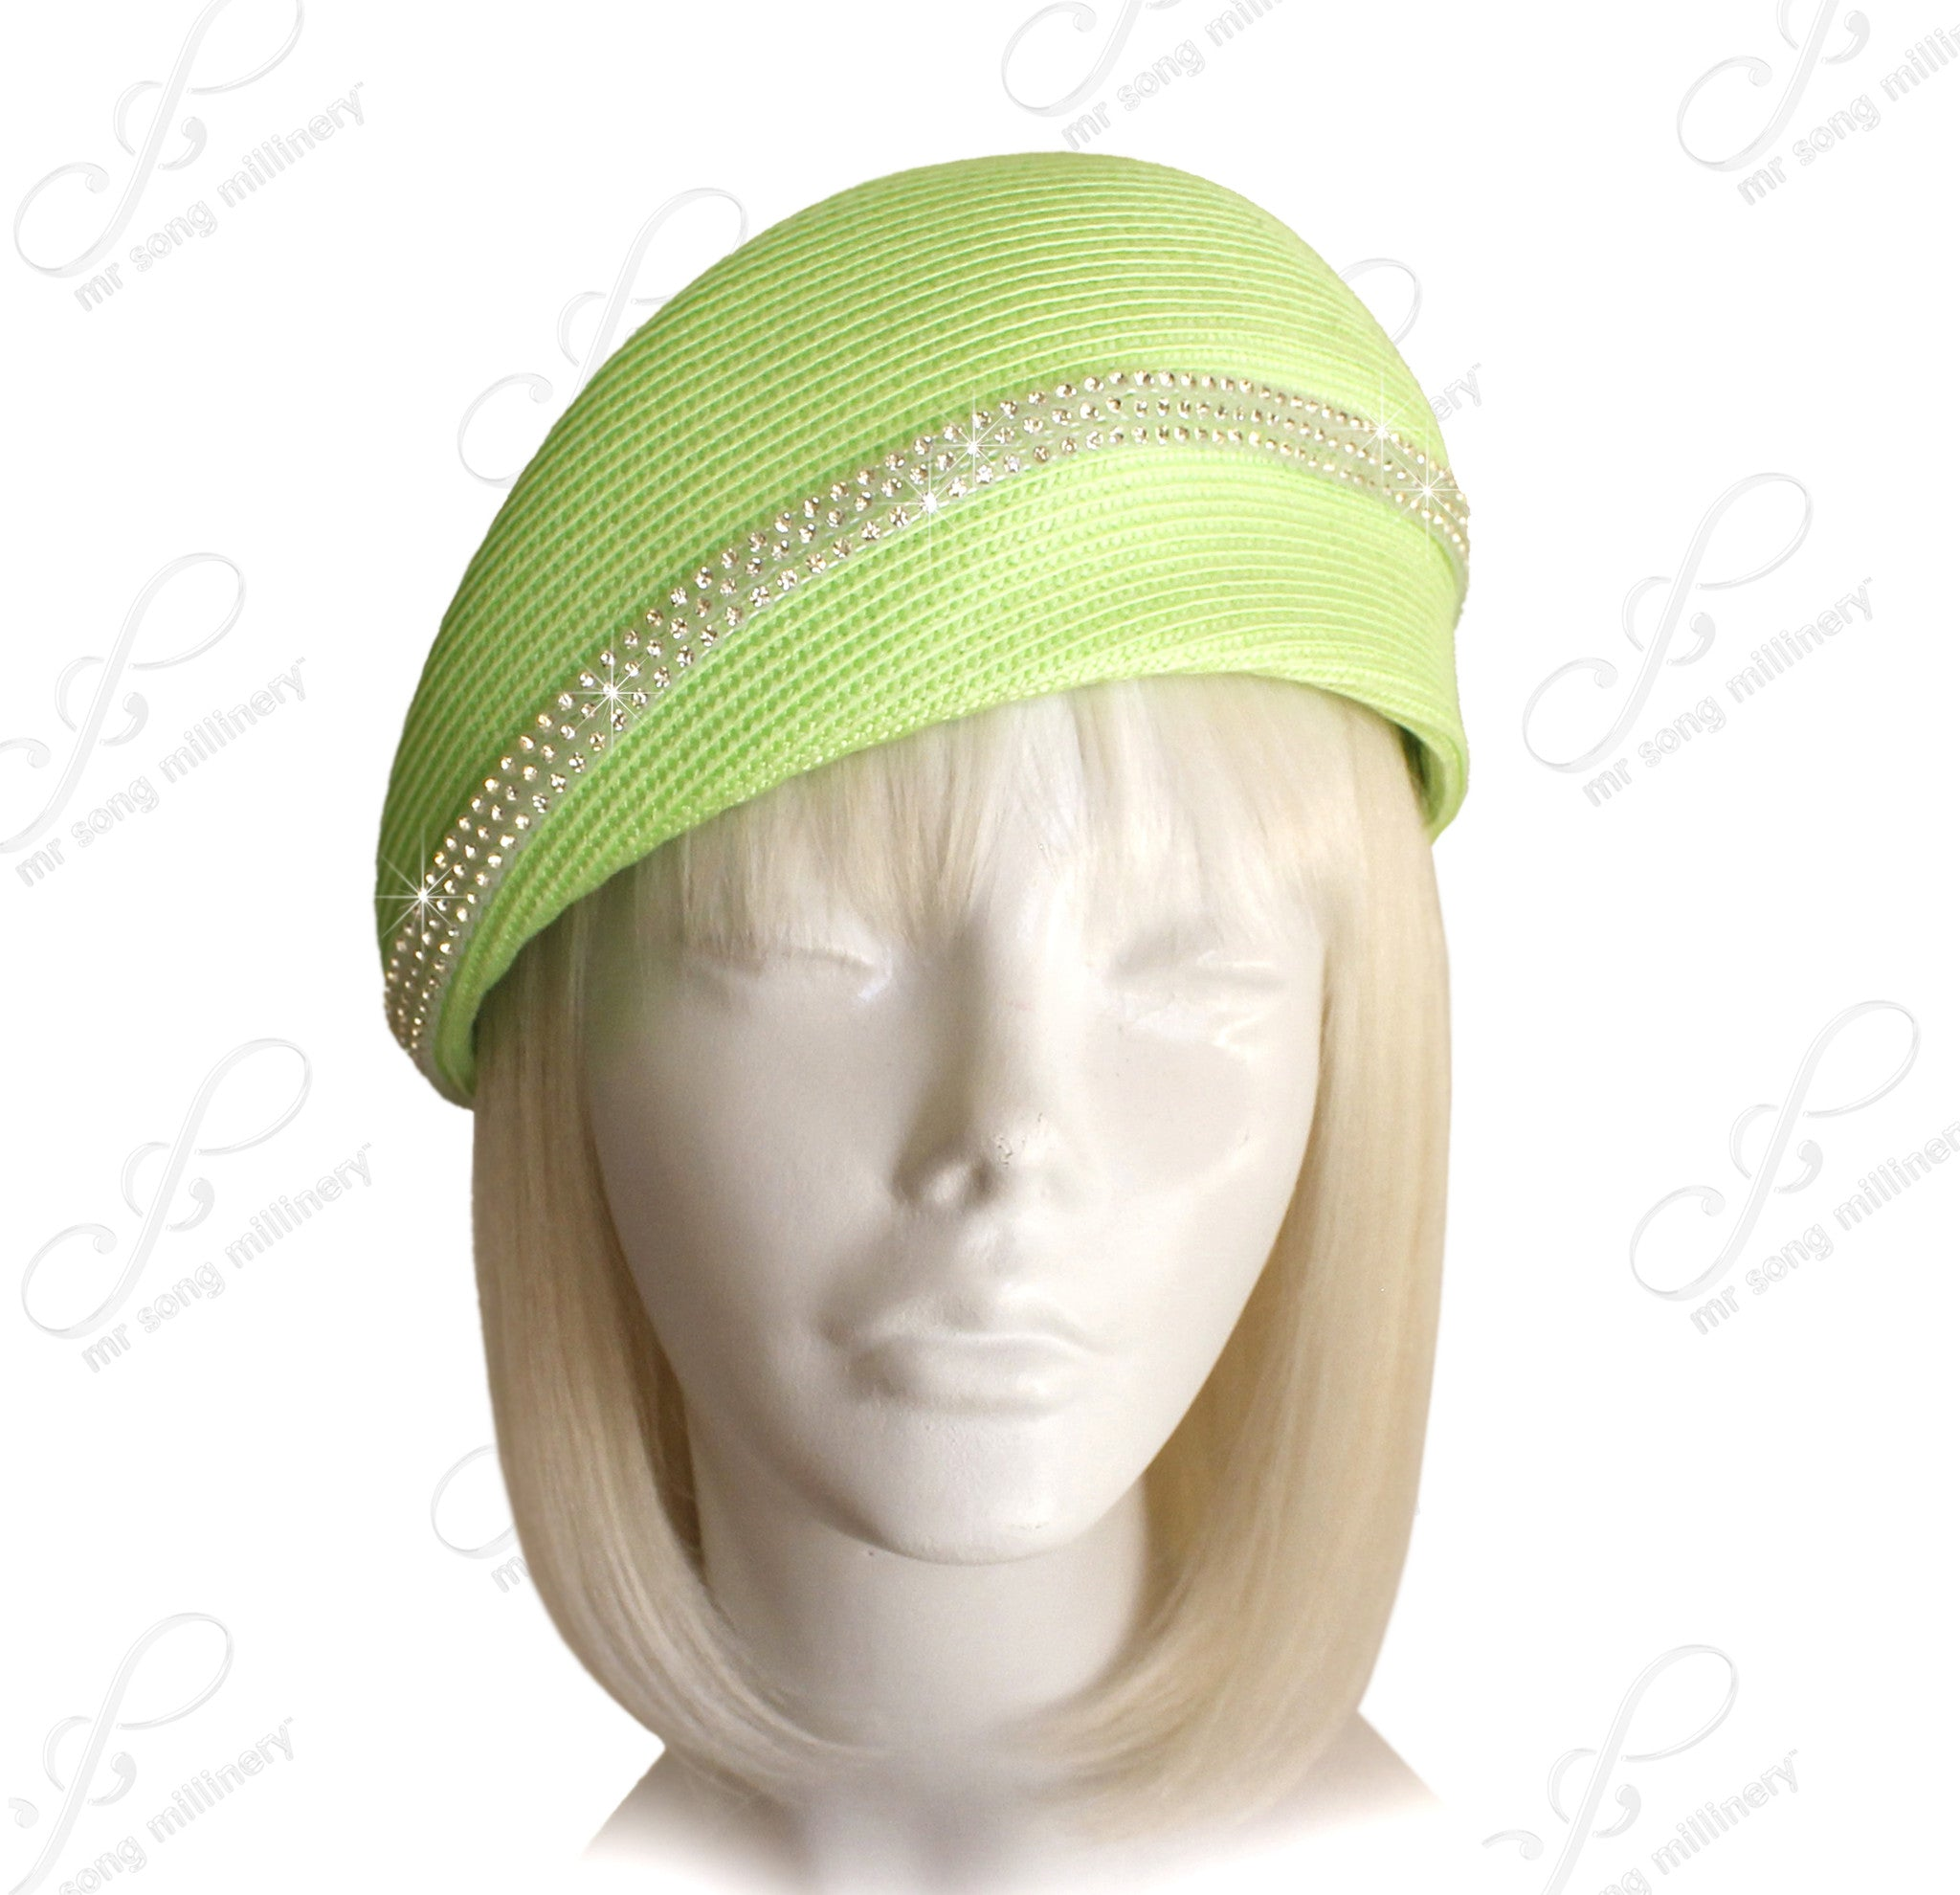 Mr. Song Millinery Beret Cloche Hat With Crystal Rhinestones - Lime Green